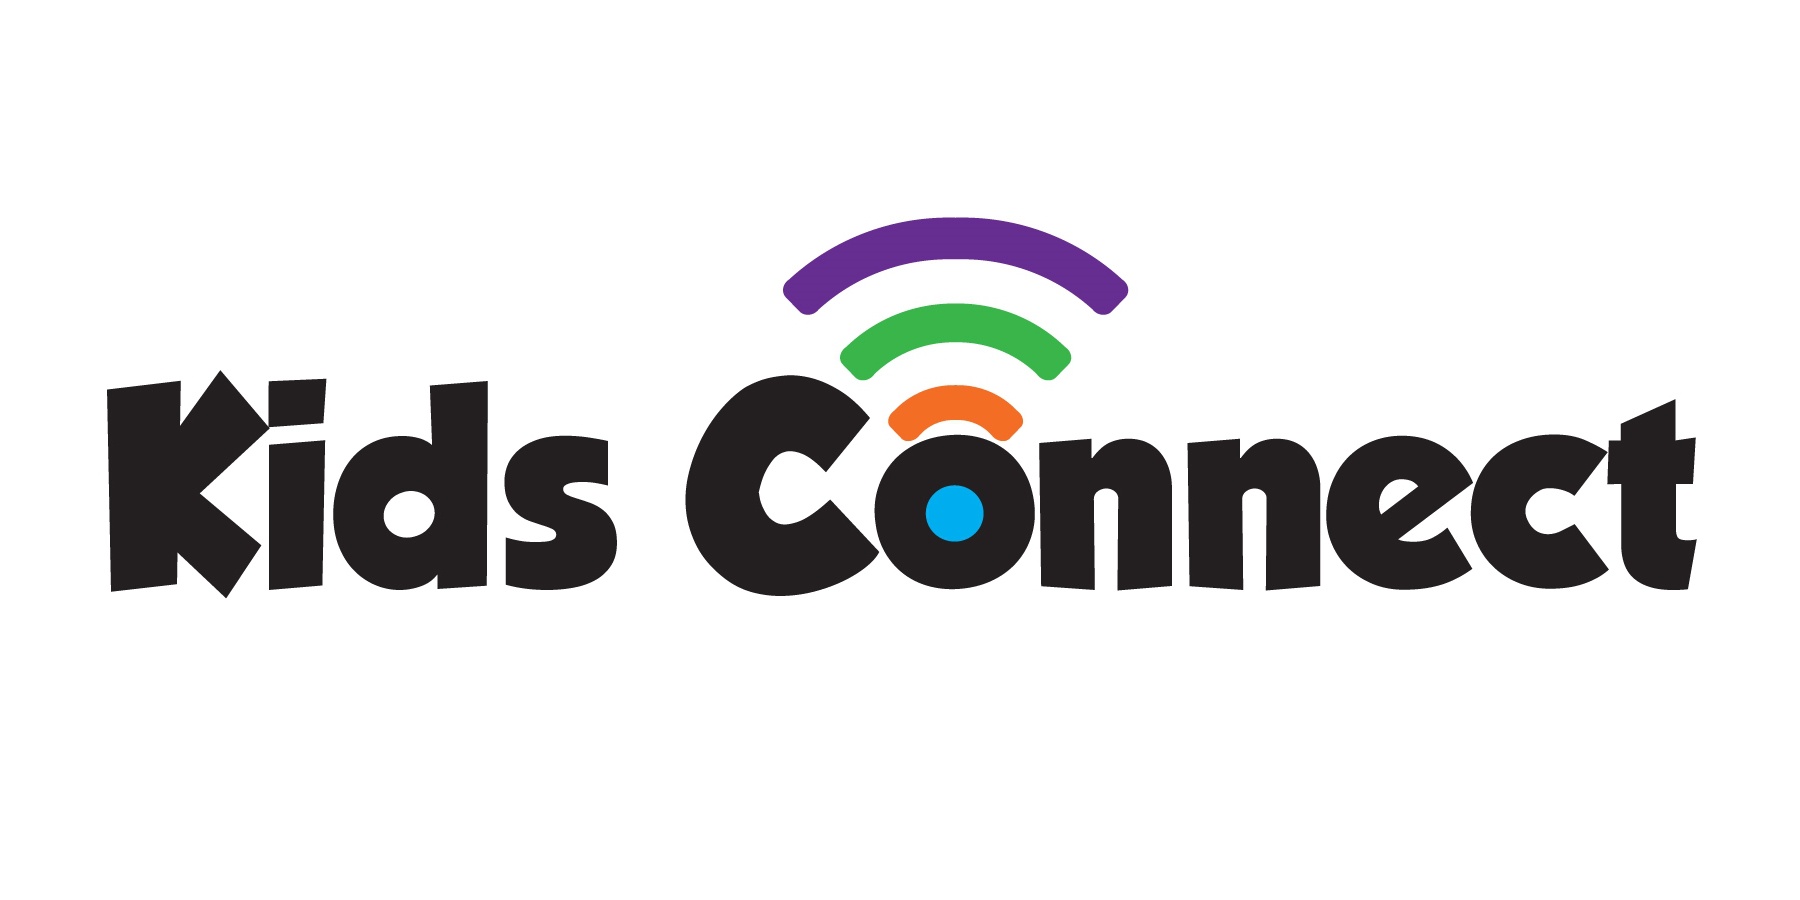 KidsConnect logo with ORANGE arc.jpg